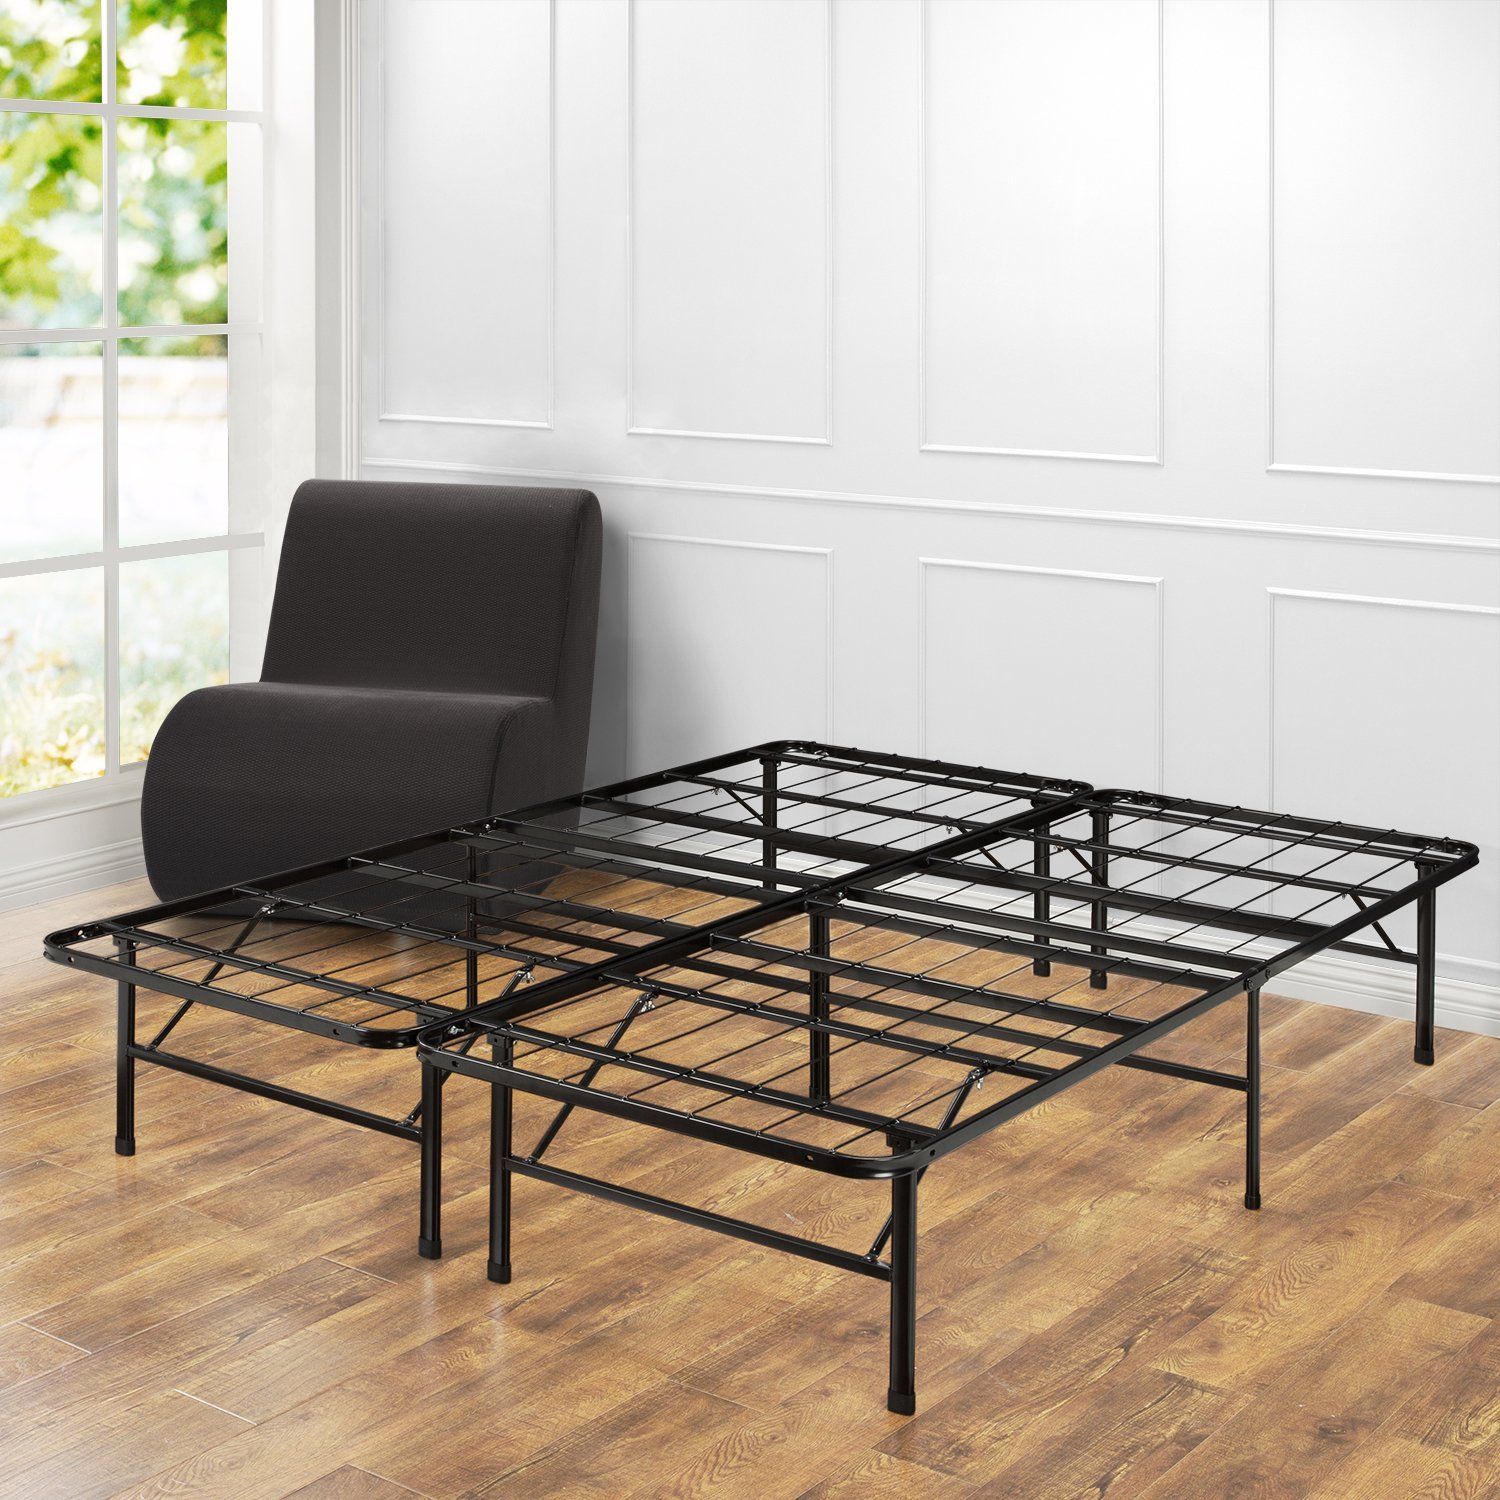 Under Bed Storage Frame Buy Sleep Master Smartbase Mattress Foundation Platform Bed Frame